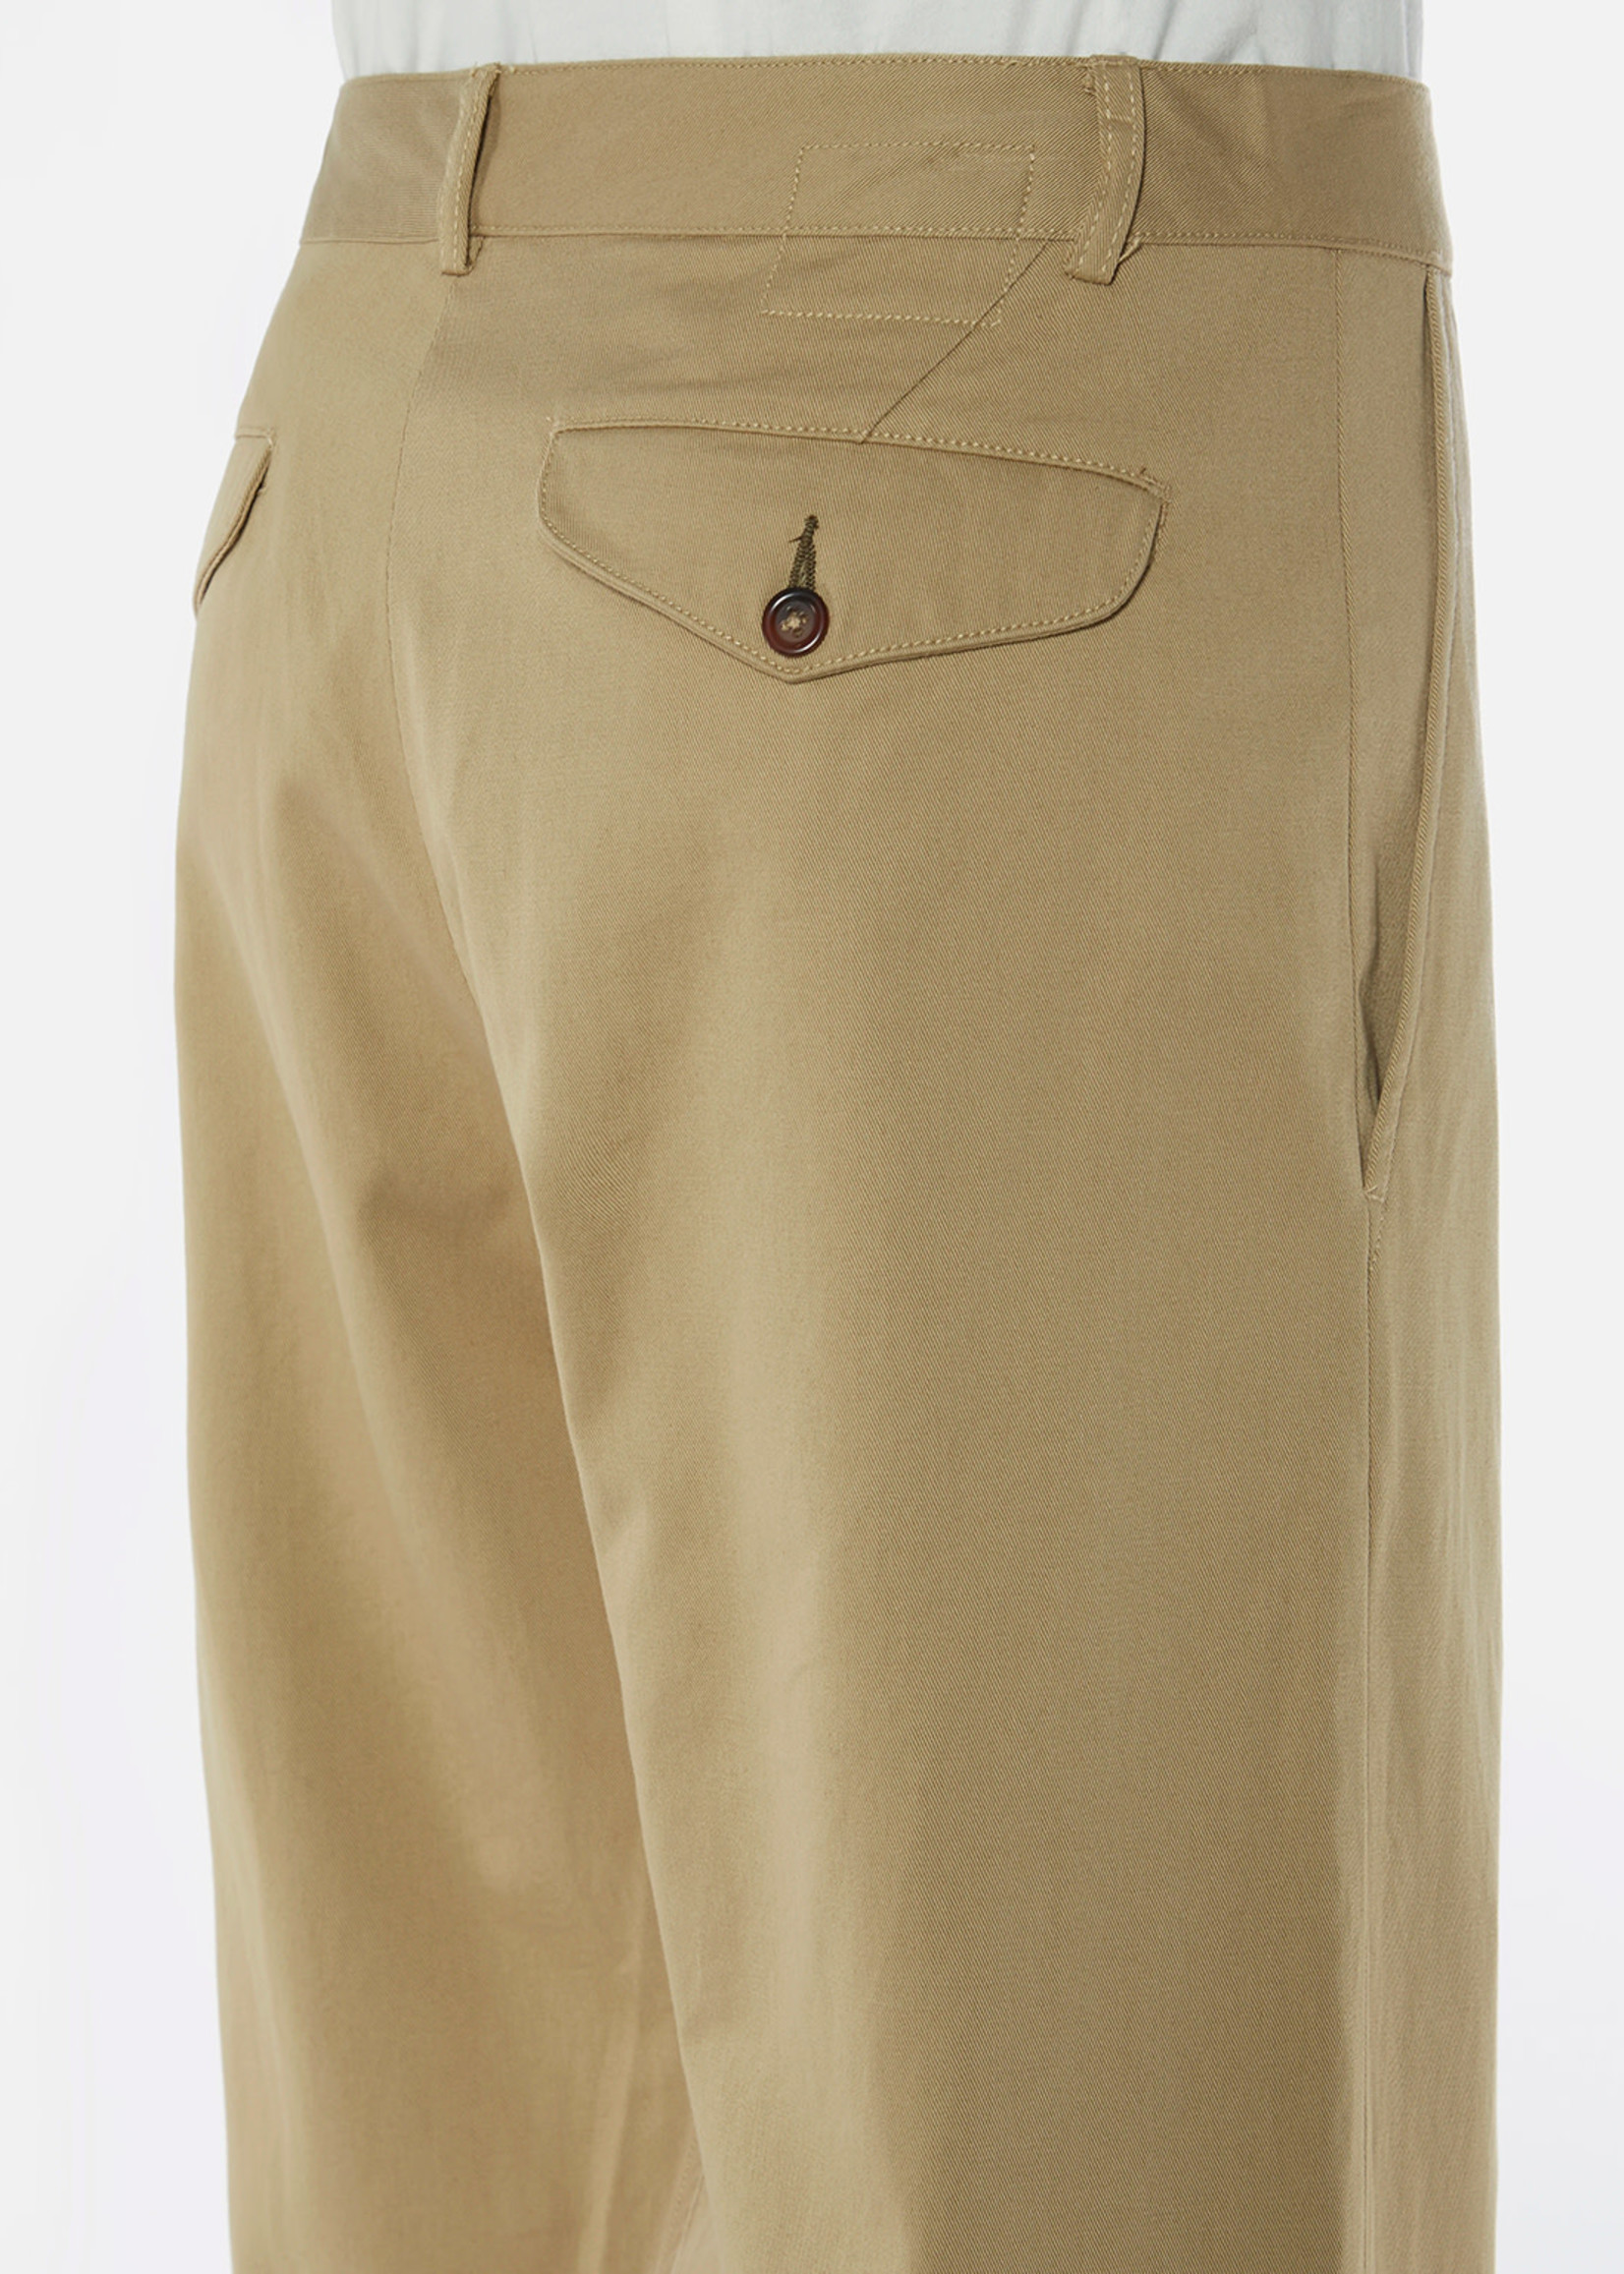 Universal Works Universal Works Aston Pant Tan Cotton Twill